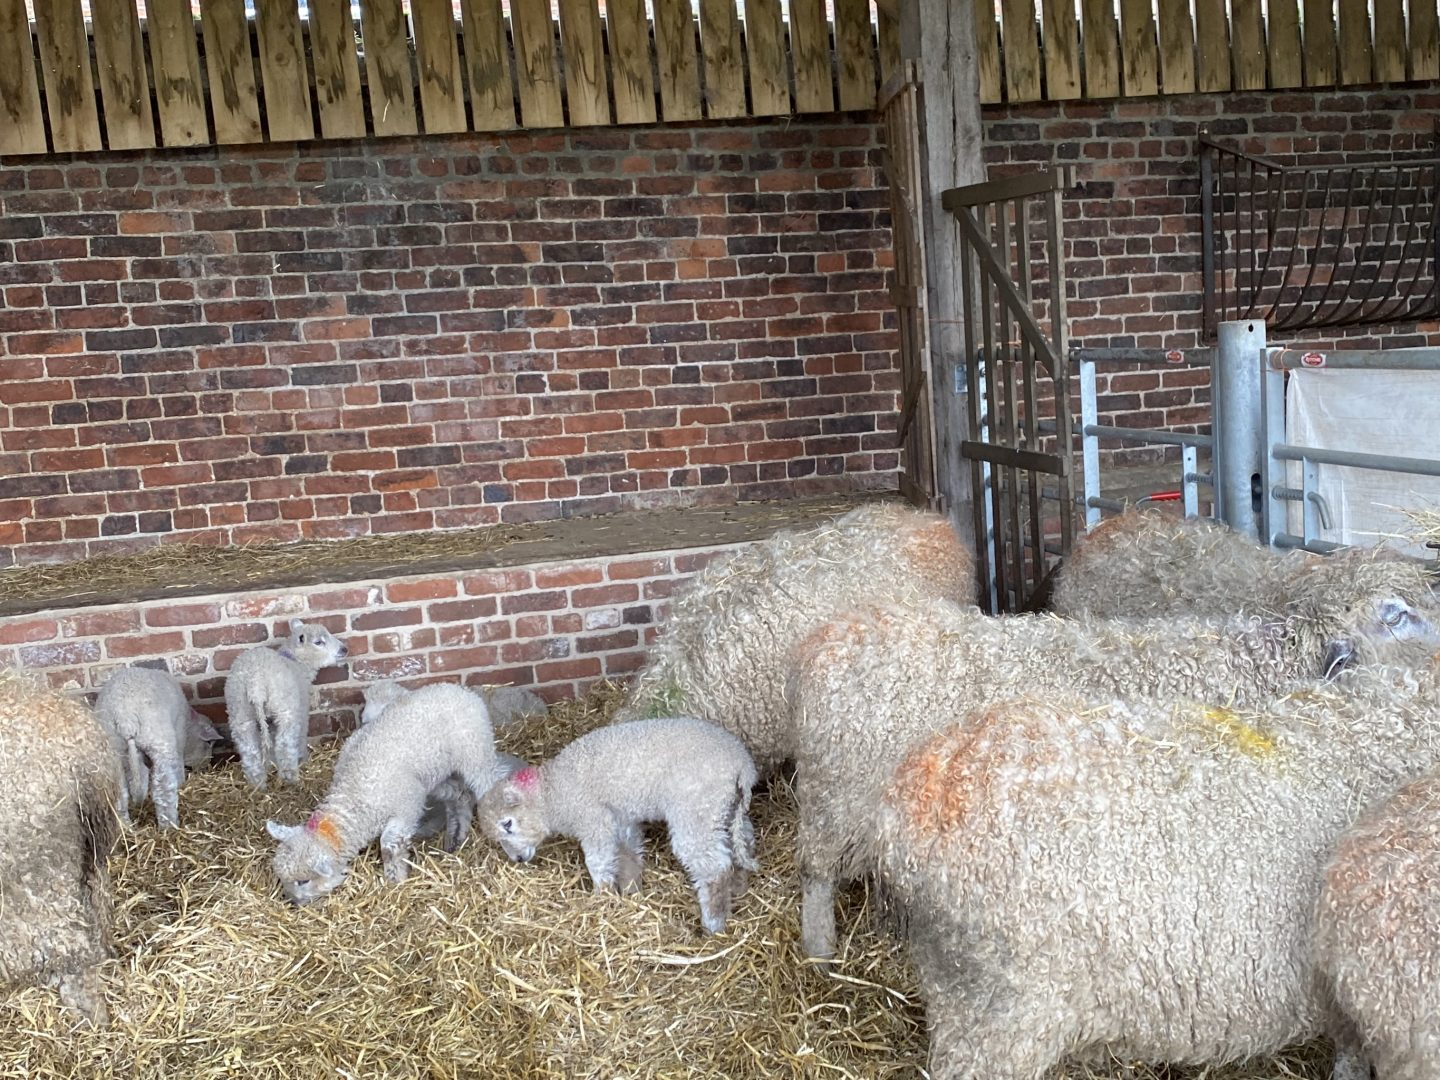 February half term in Yorkshire with baby lambs in a shed